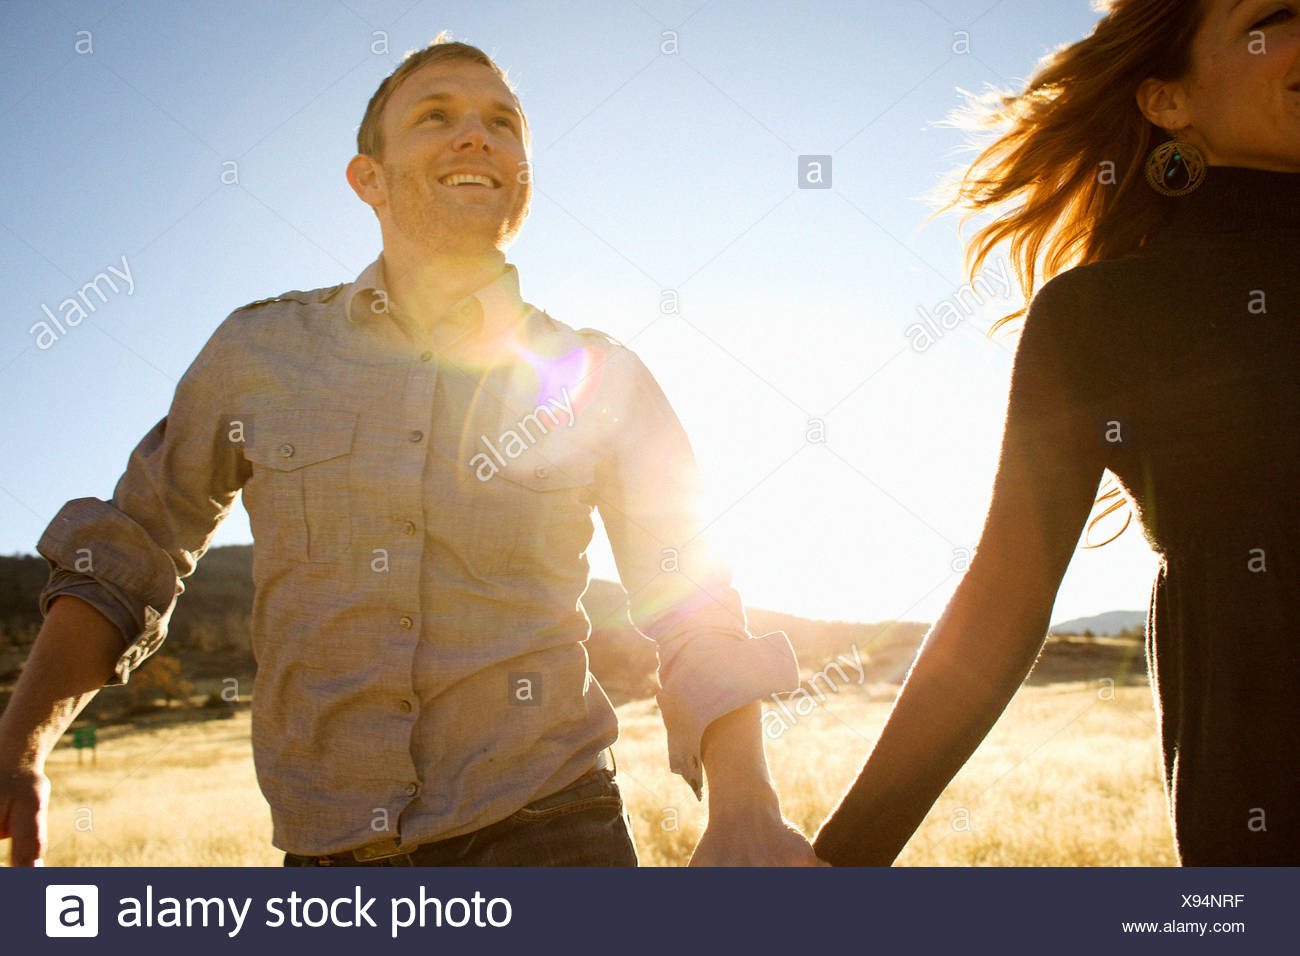 Couple run while holding hands and smiling in an open field. - Stock Image